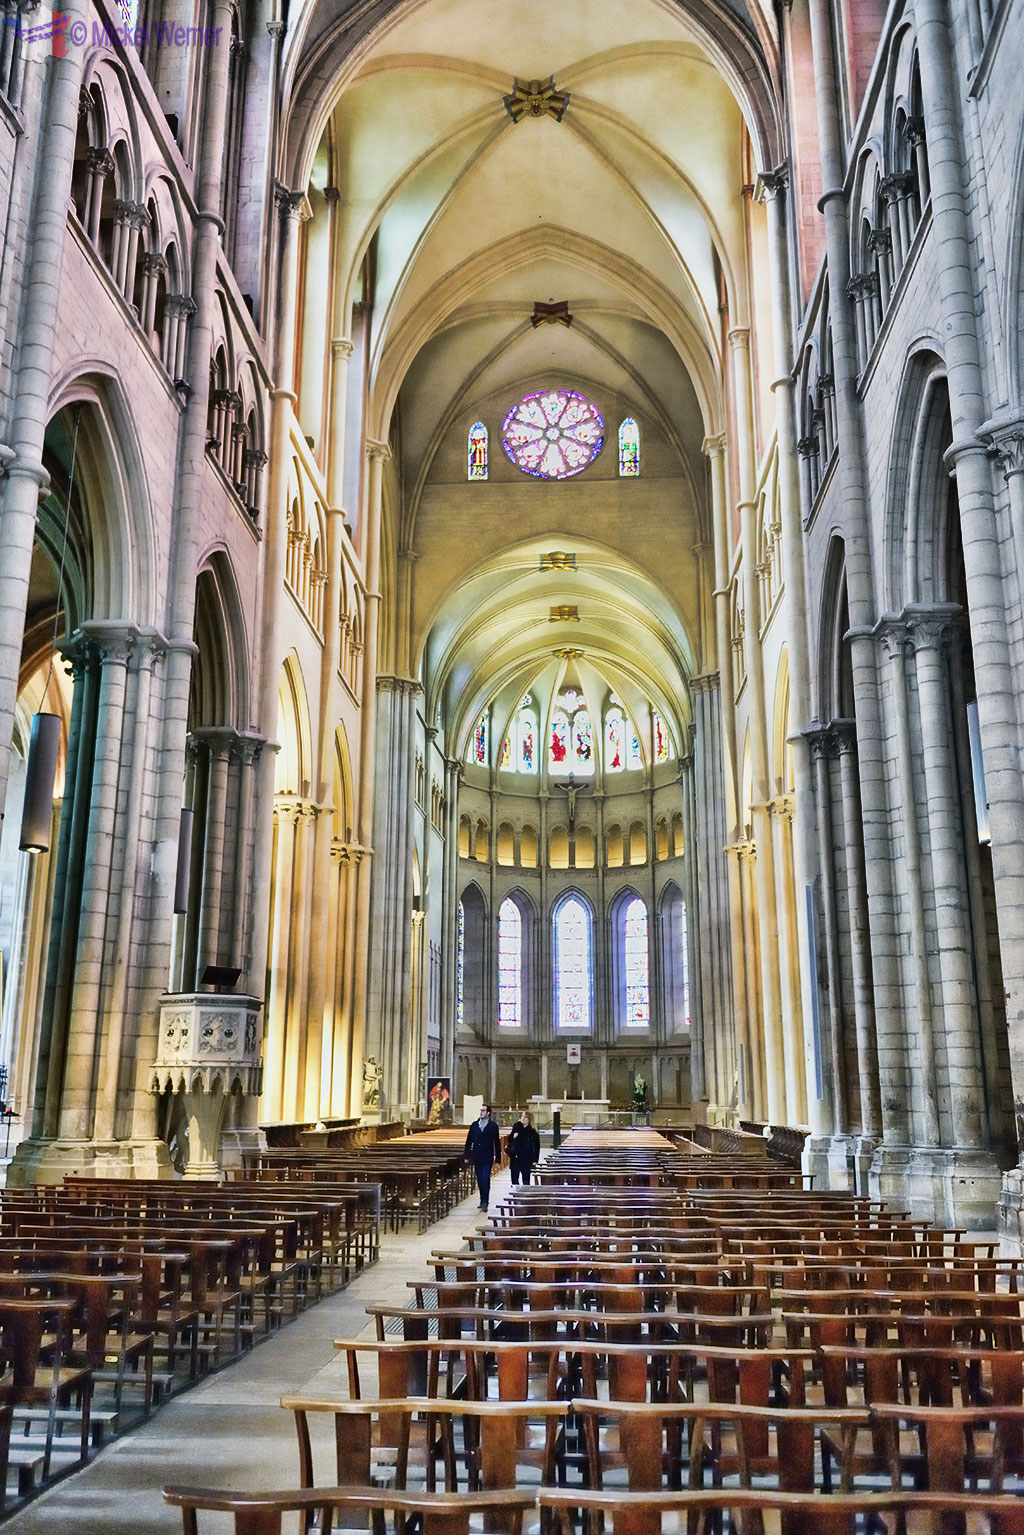 Inside the nave of the Cathedrale Saint-Jean-Baptiste de Lyon - Saint John the Baptist Cathedral of Lyon